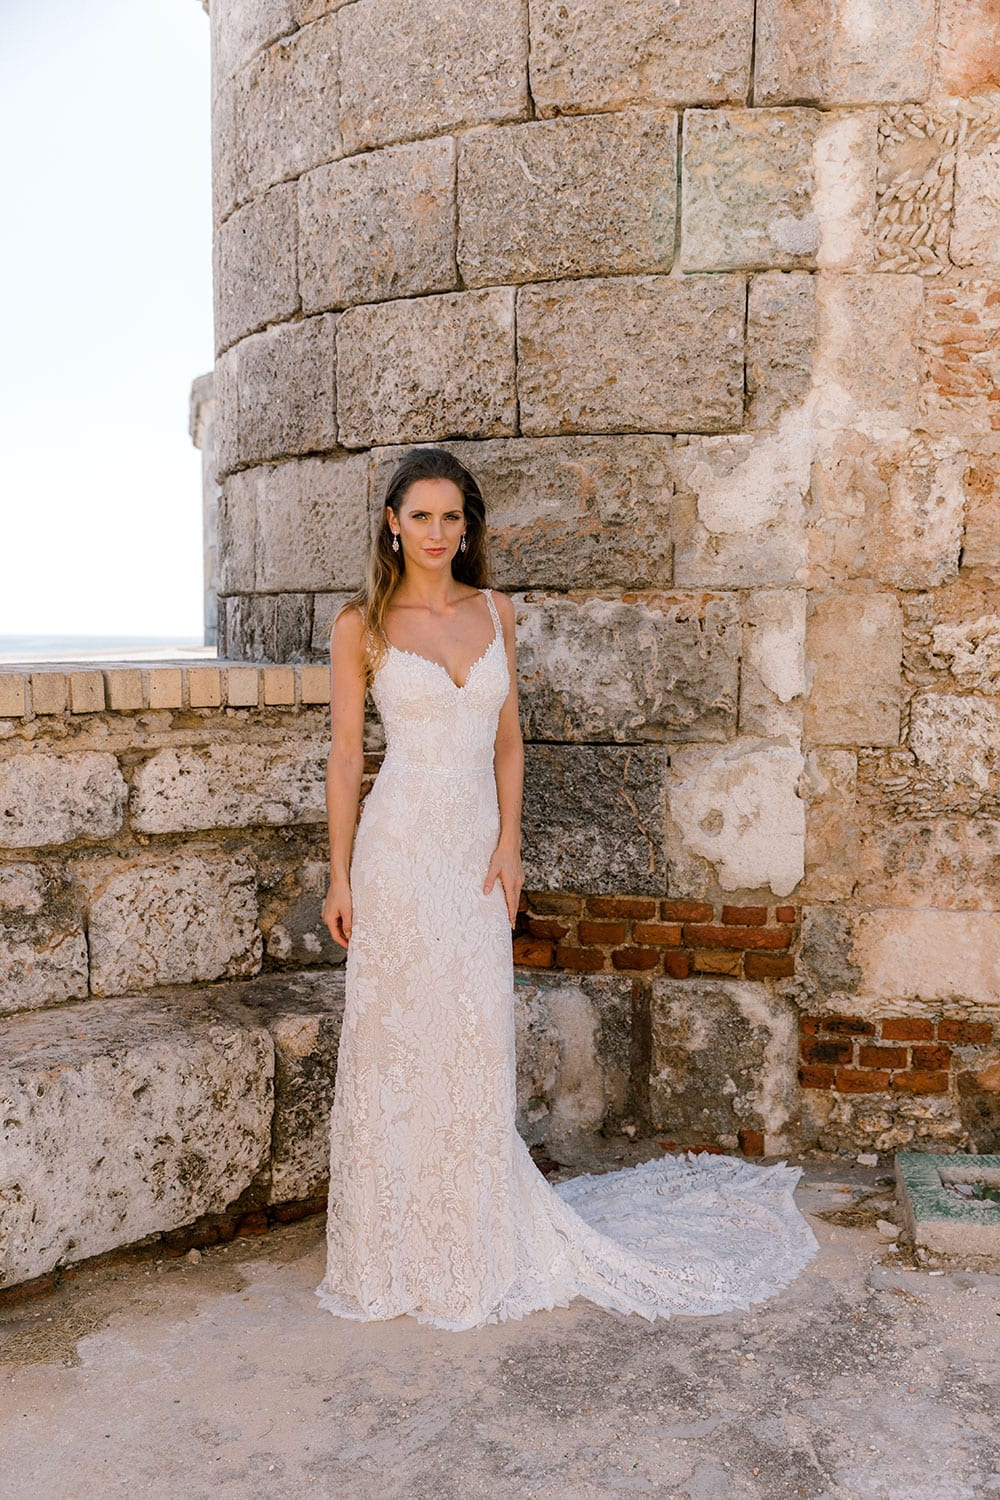 Model wearing Vinka Design Miriam Wedding Dress, a Beaded Lace Wedding Gown in front of old wall in Cuba